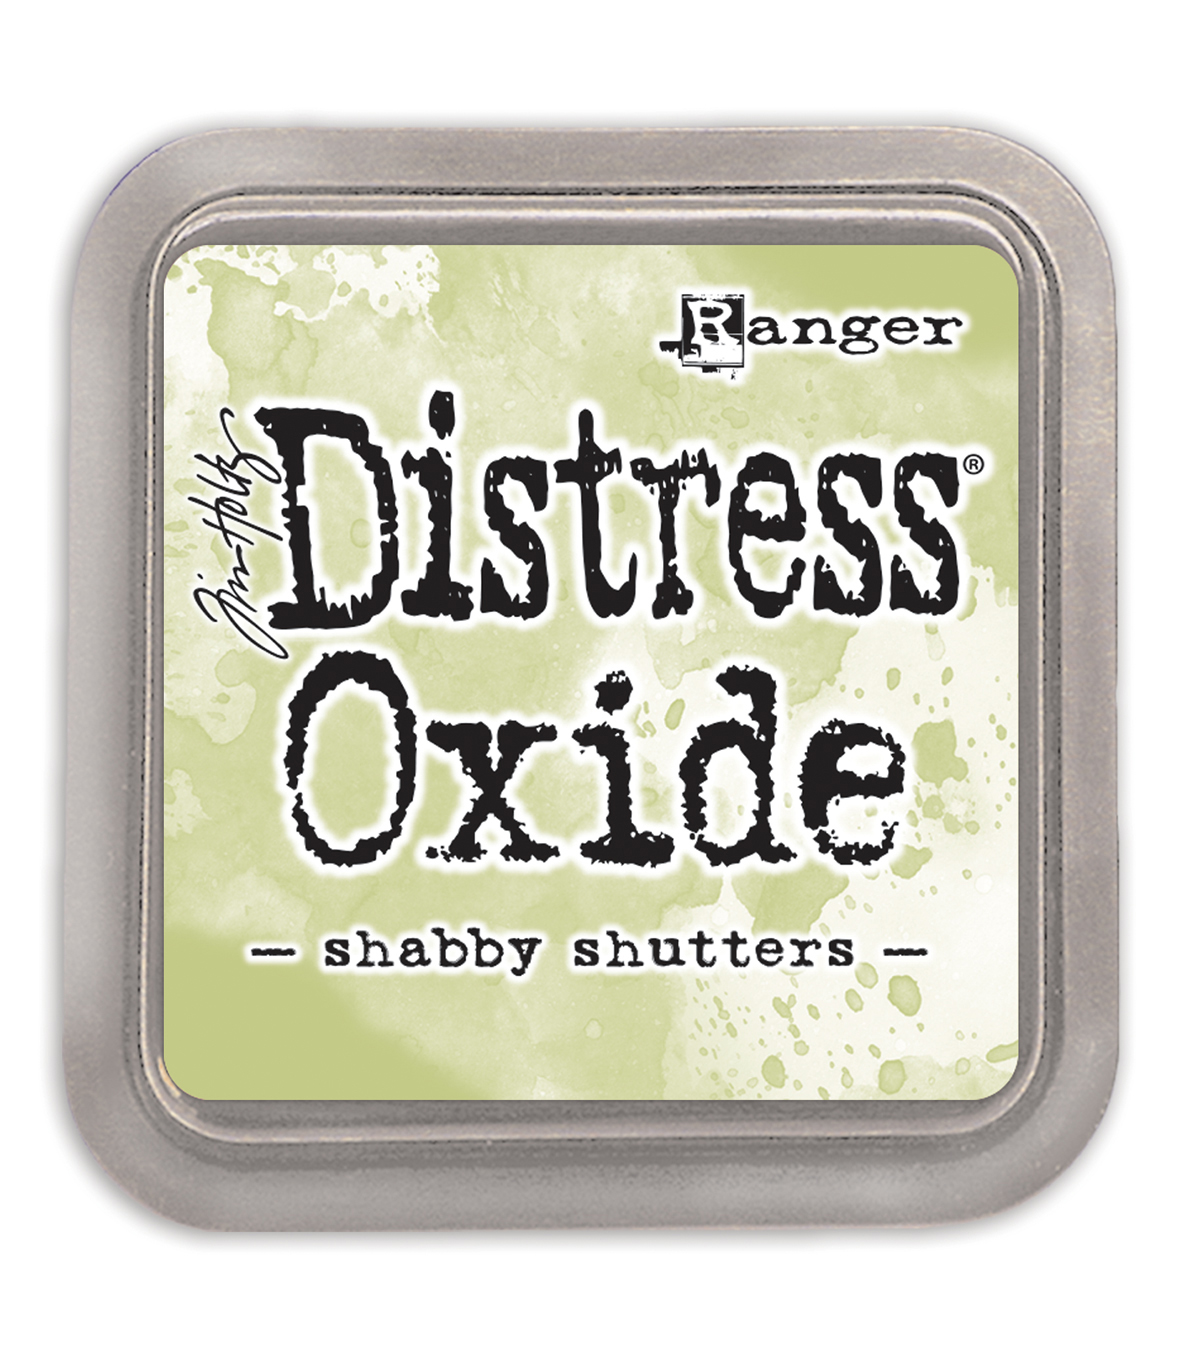 Tim Holtz Distress Oxide Ink Pad, Shabby Shutters